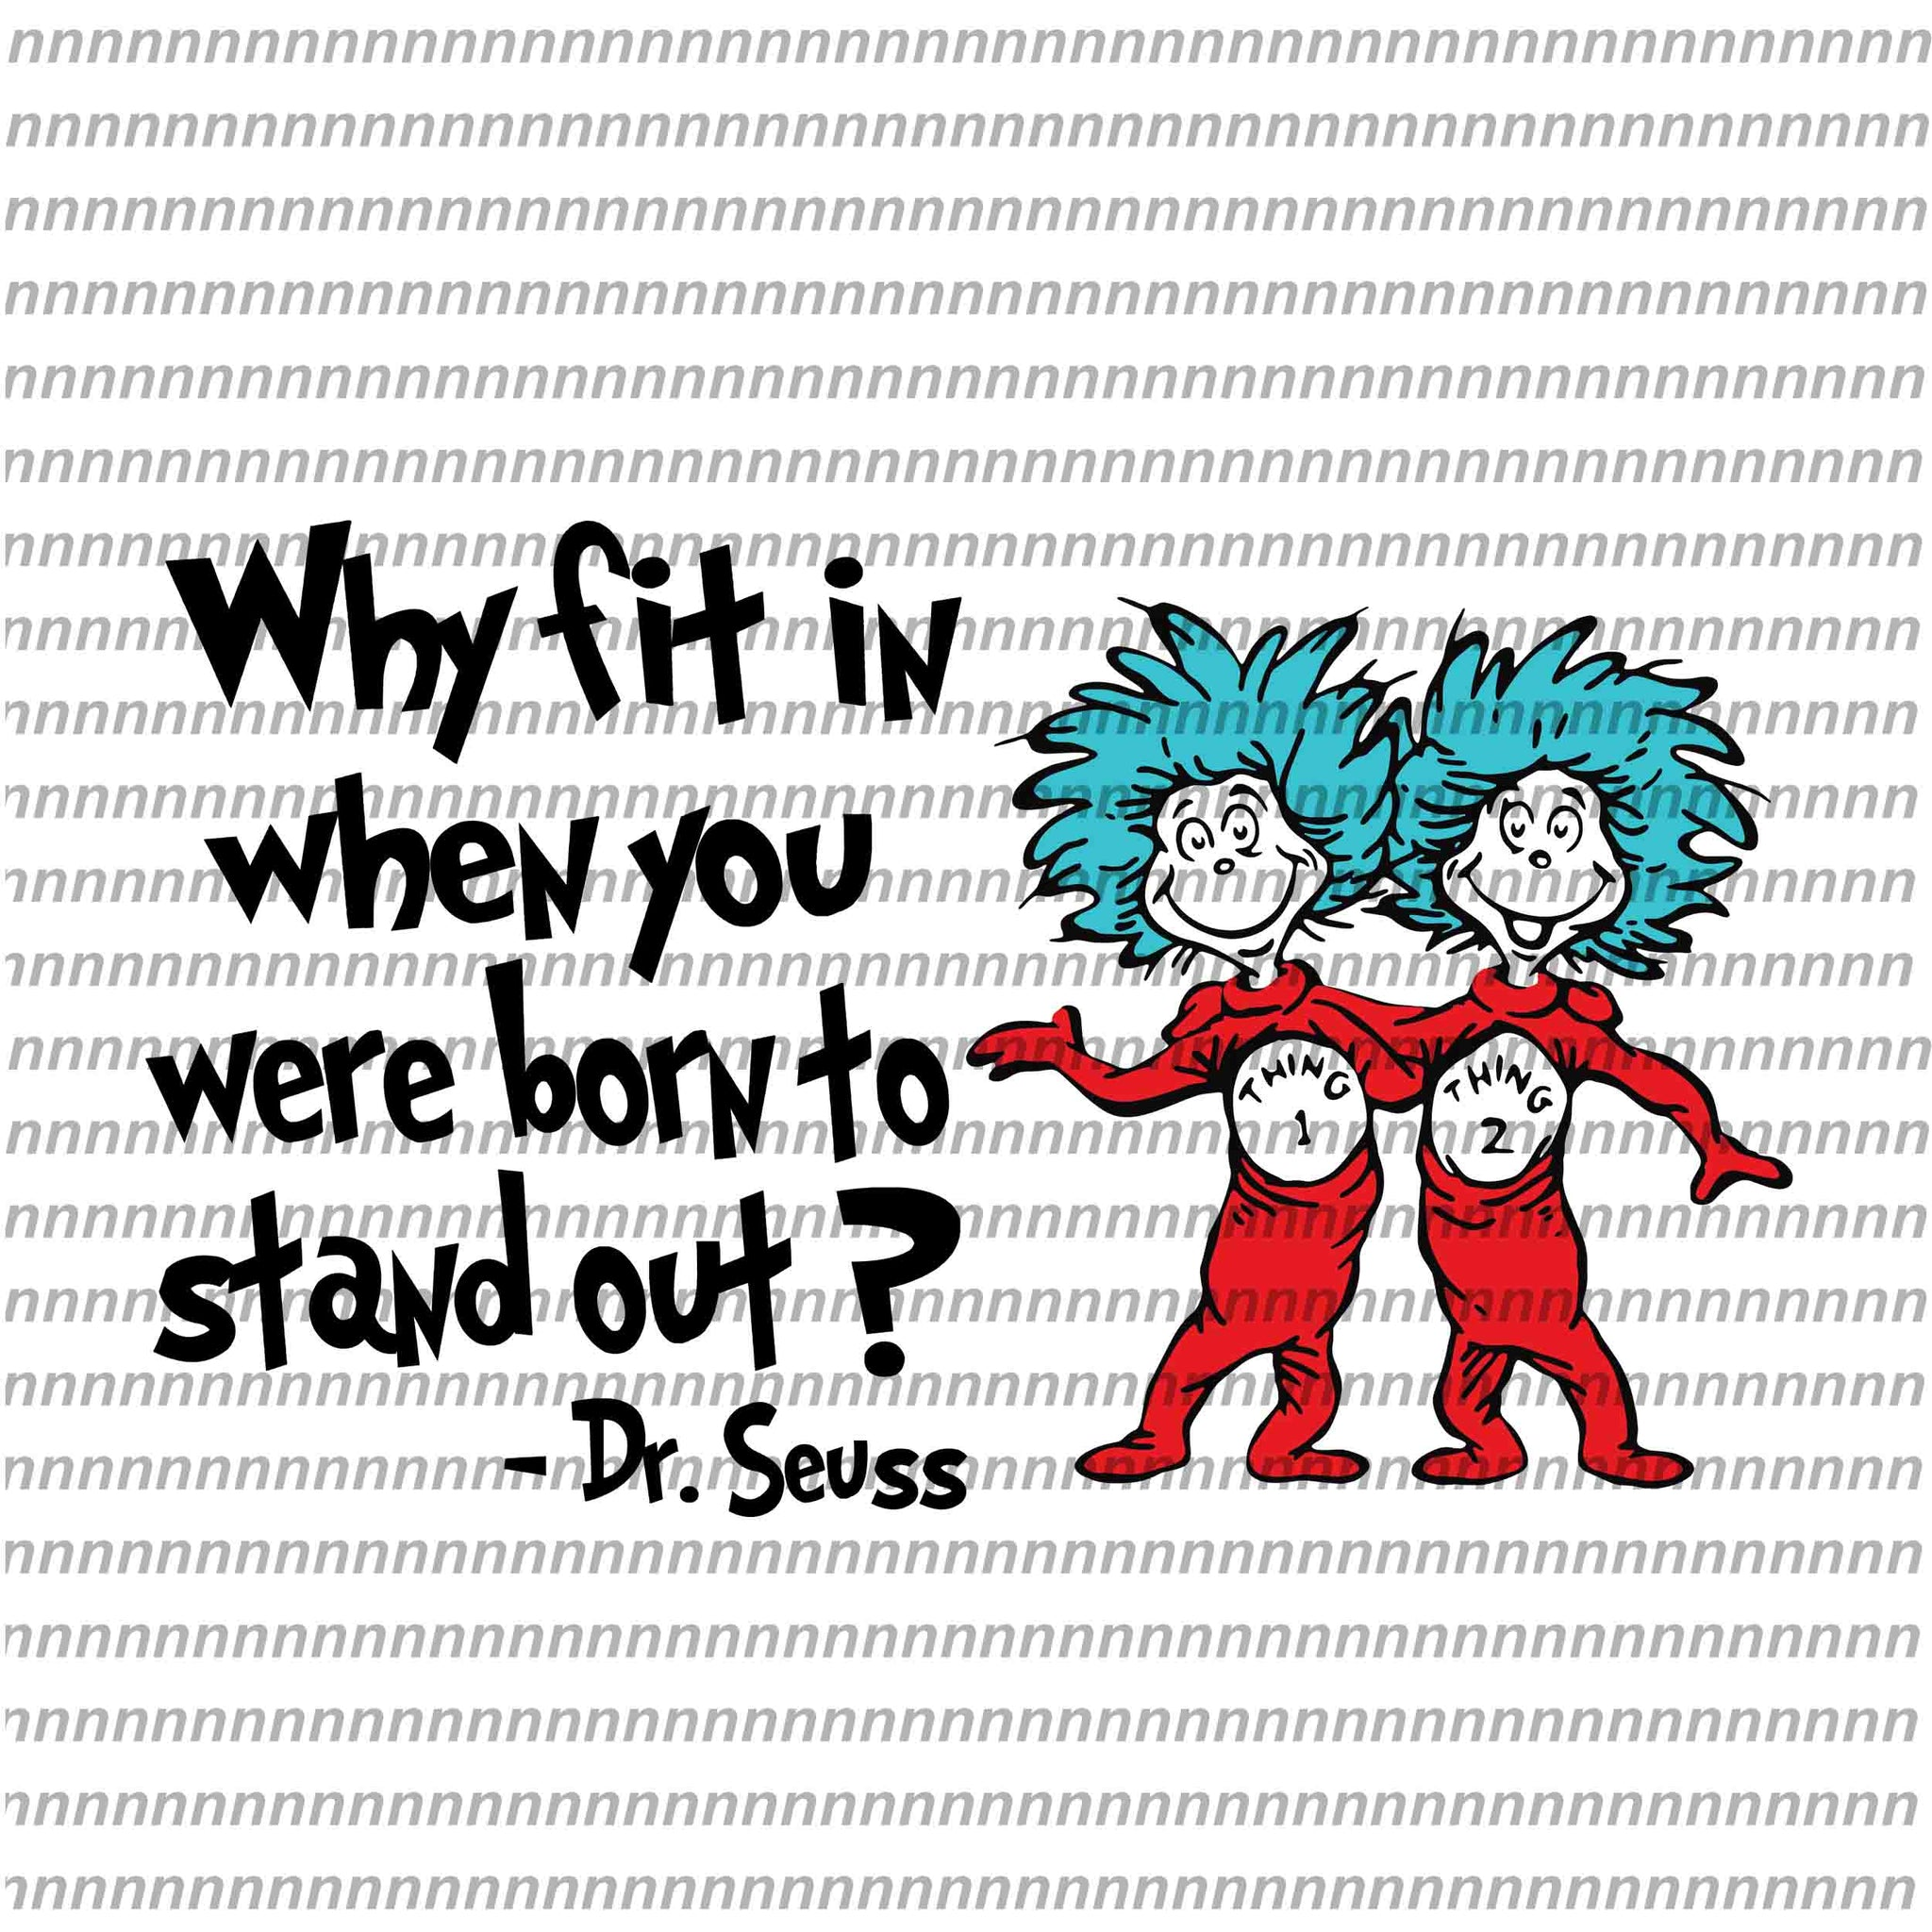 Why fin in when you were born to stand out, dr seuss svg, dr seuss quote, dr seuss design, Cat in the hat svg, thing 1 thing 2 thing 3, svg, png, dxf, eps file